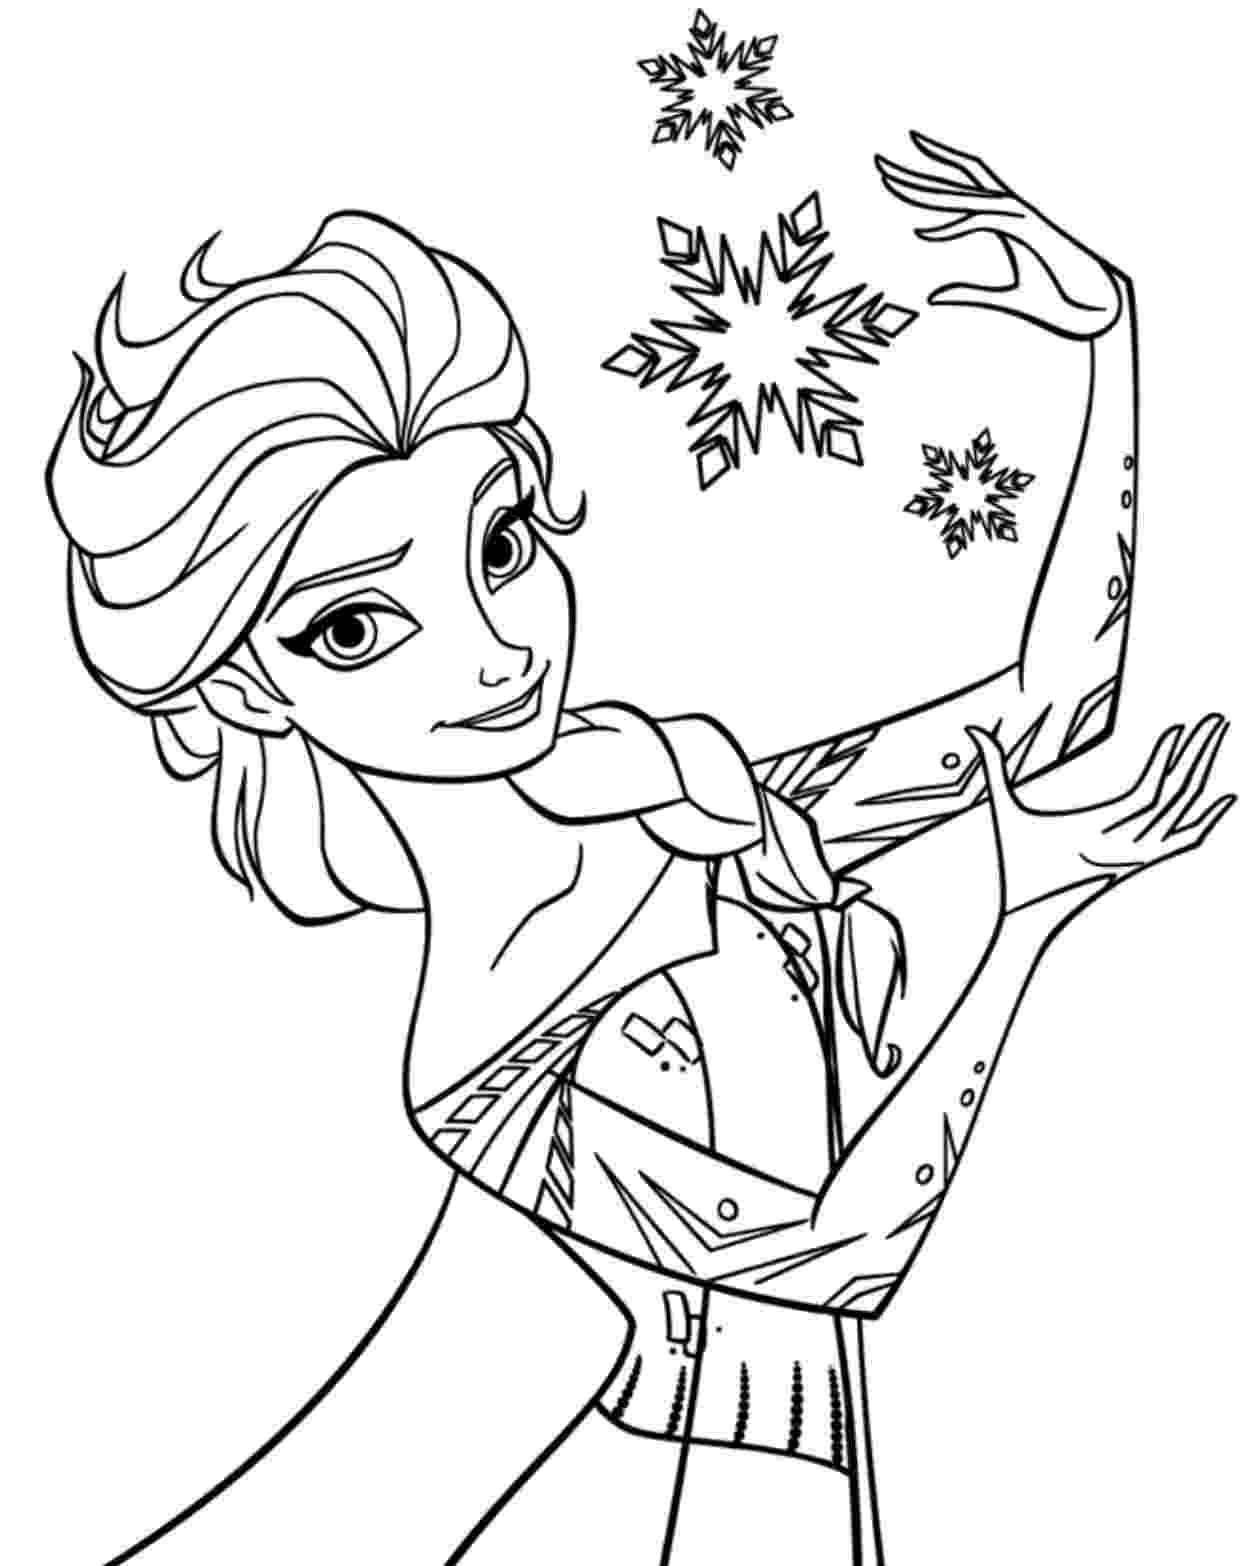 printable coloring pages for kids free printable pinocchio coloring pages for kids kids printable coloring pages for